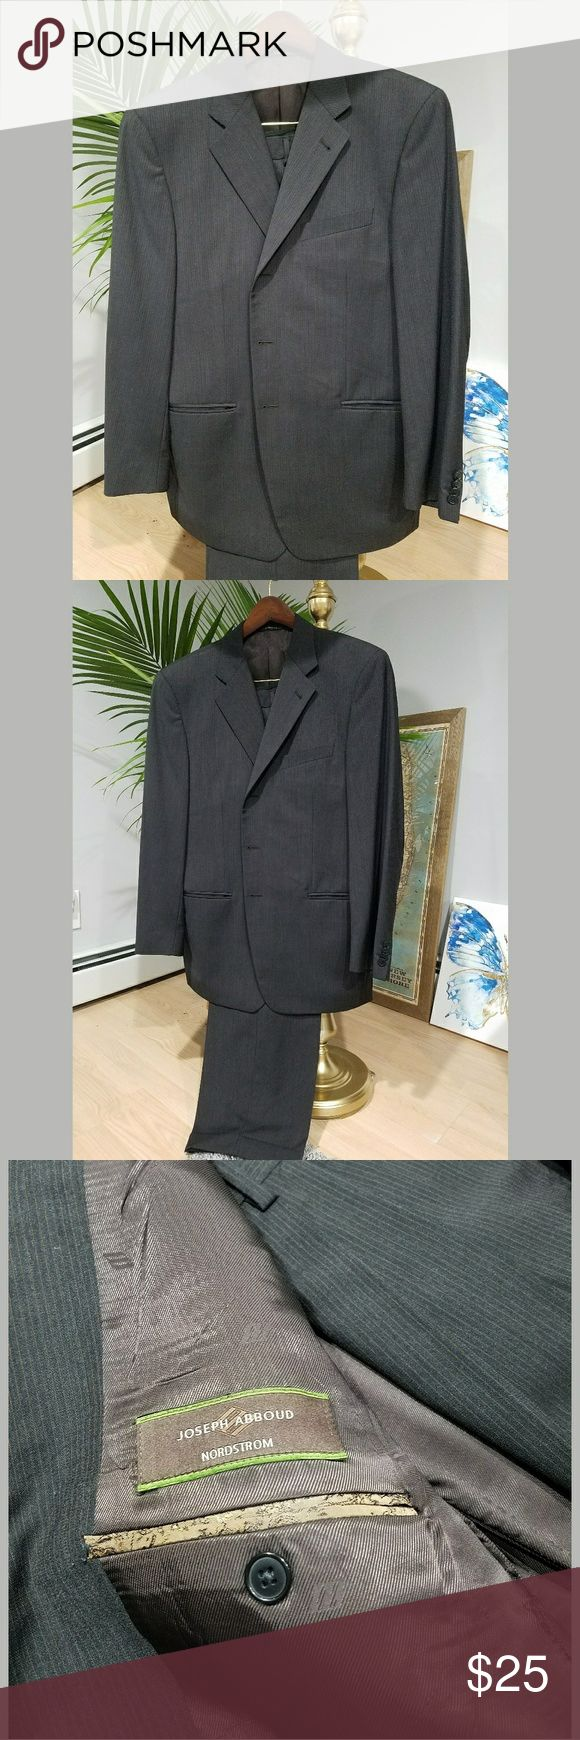 Joseph Abboud Nordstrom Exclusive Men's Wool Suit Joseph Abboud wool suit made exclusively for Nordstrom. Suit is black with delicate dark brown pinstrips. Most details shown above in picture but please conment any questions. Pants are cuffed and have a medium break. Joseph Abboud for Nordstrom Suits & Blazers Suits